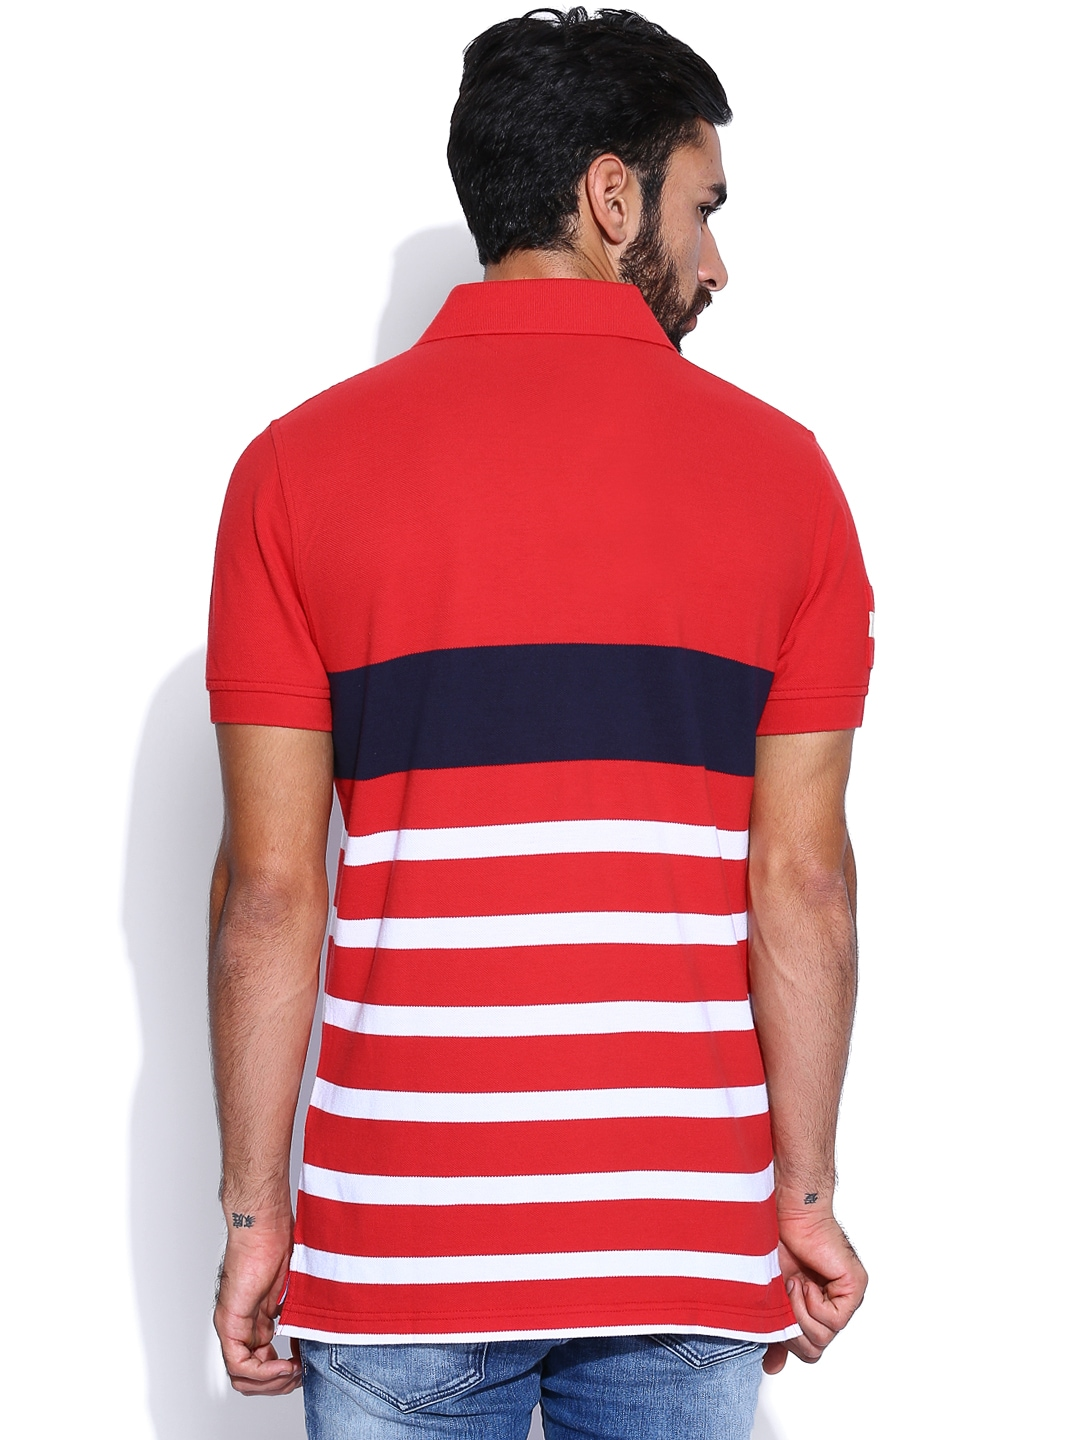 Myntra tommy hilfiger men red white striped polo t shirt for Red white striped polo shirt